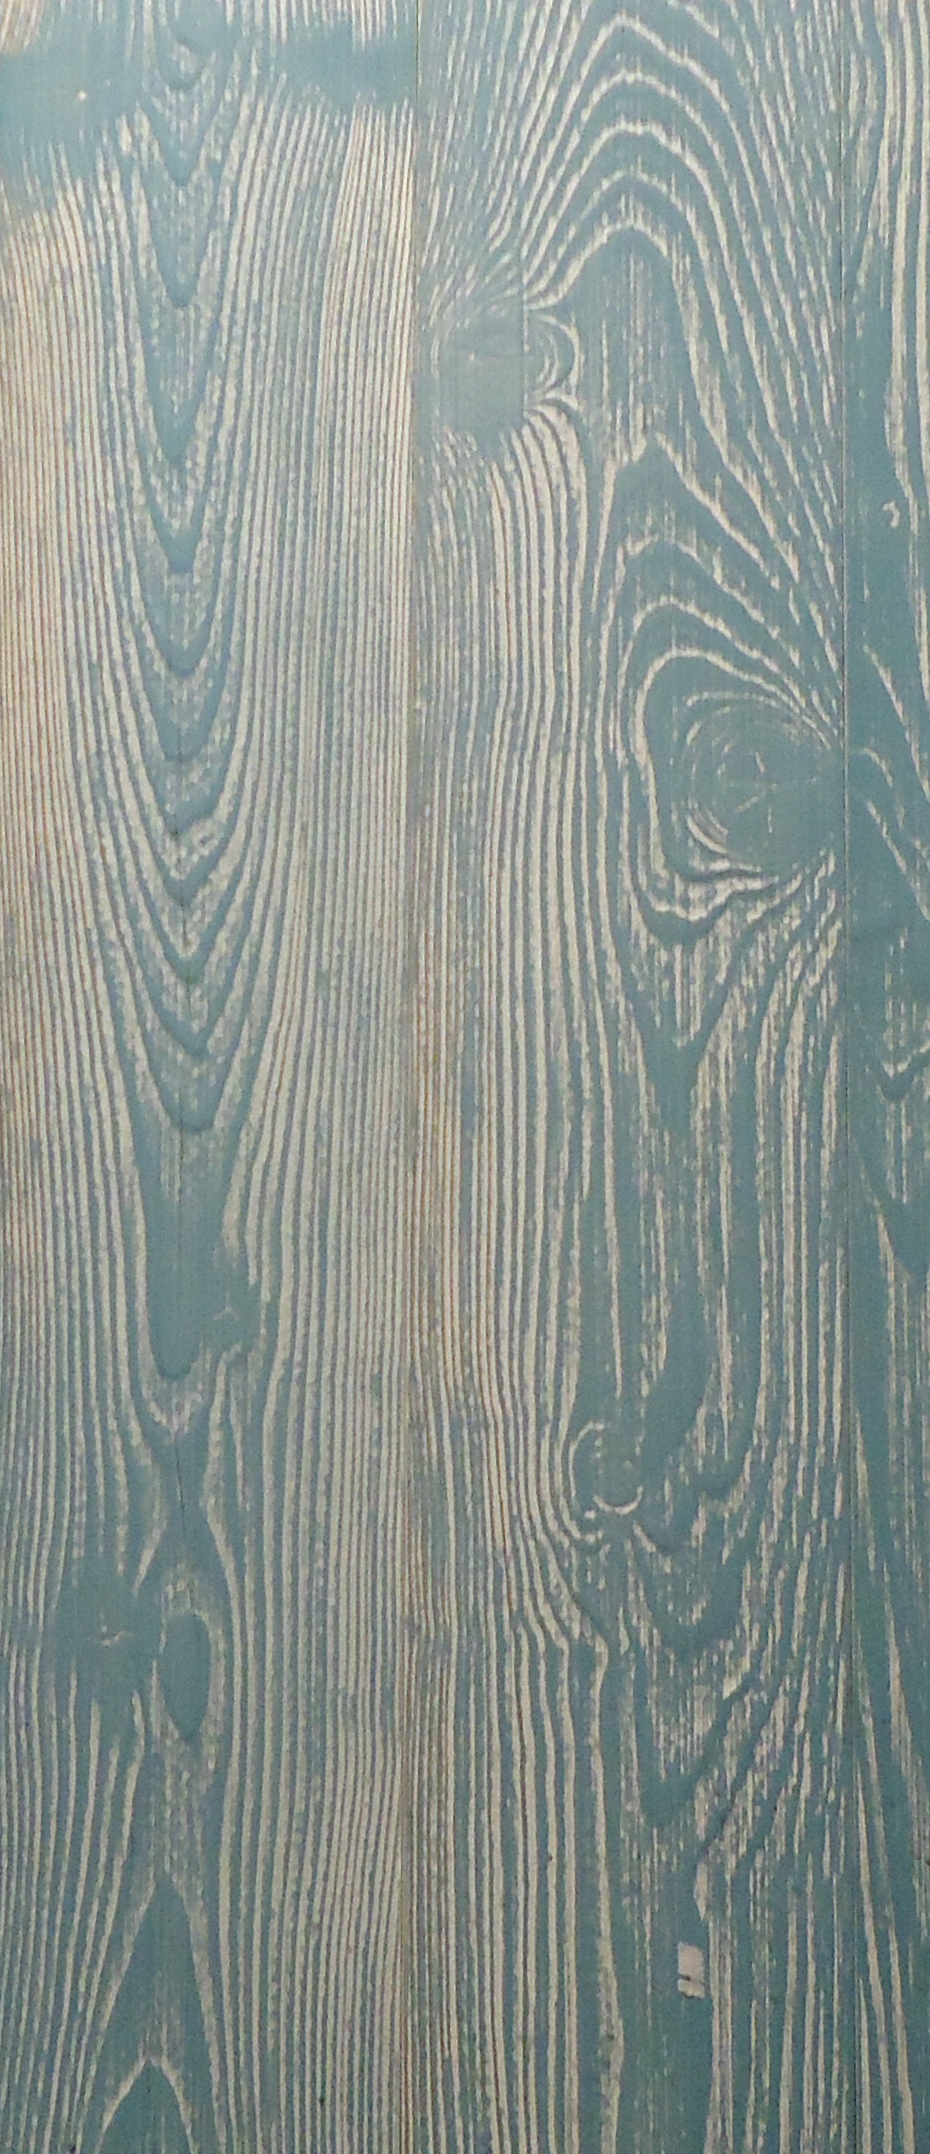 Interior wall texture seamless this collectioncustom color hardwood flooring made by pid floors in